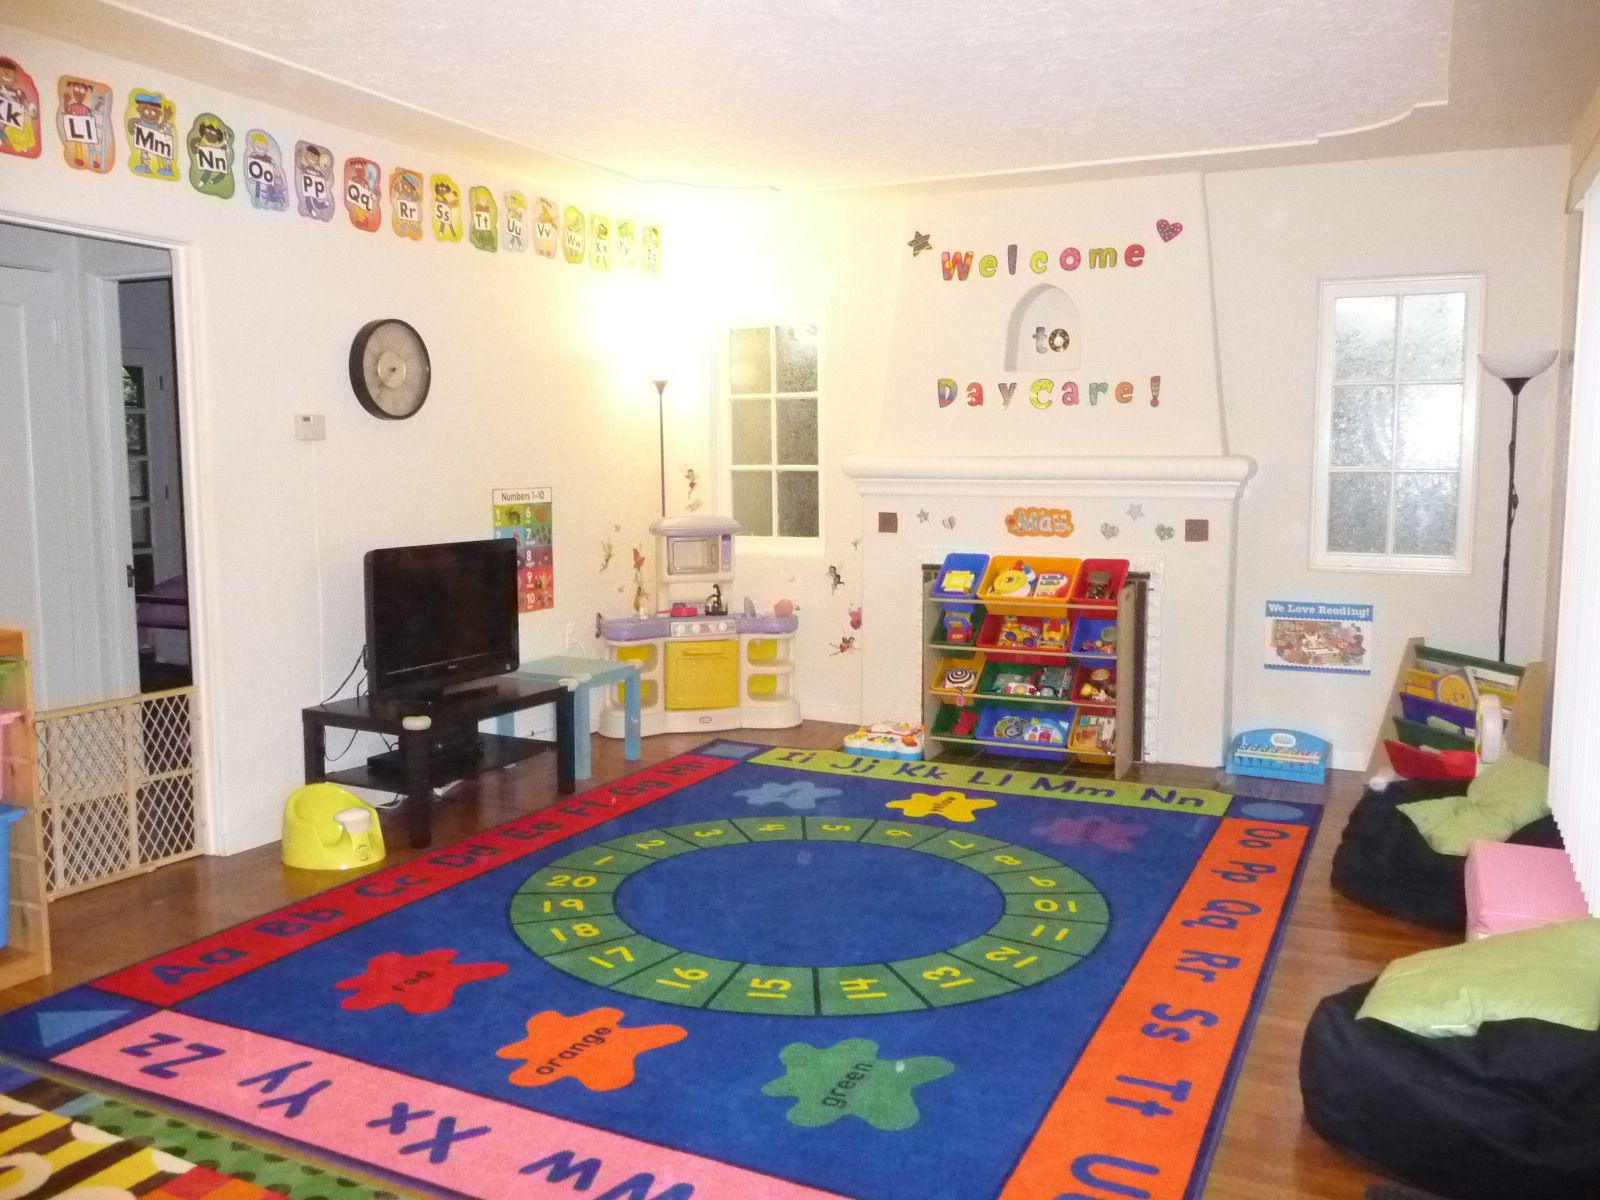 At Home Daycare Angels Home Daycare A Large Family Child Care Home In Palo Alto Ca